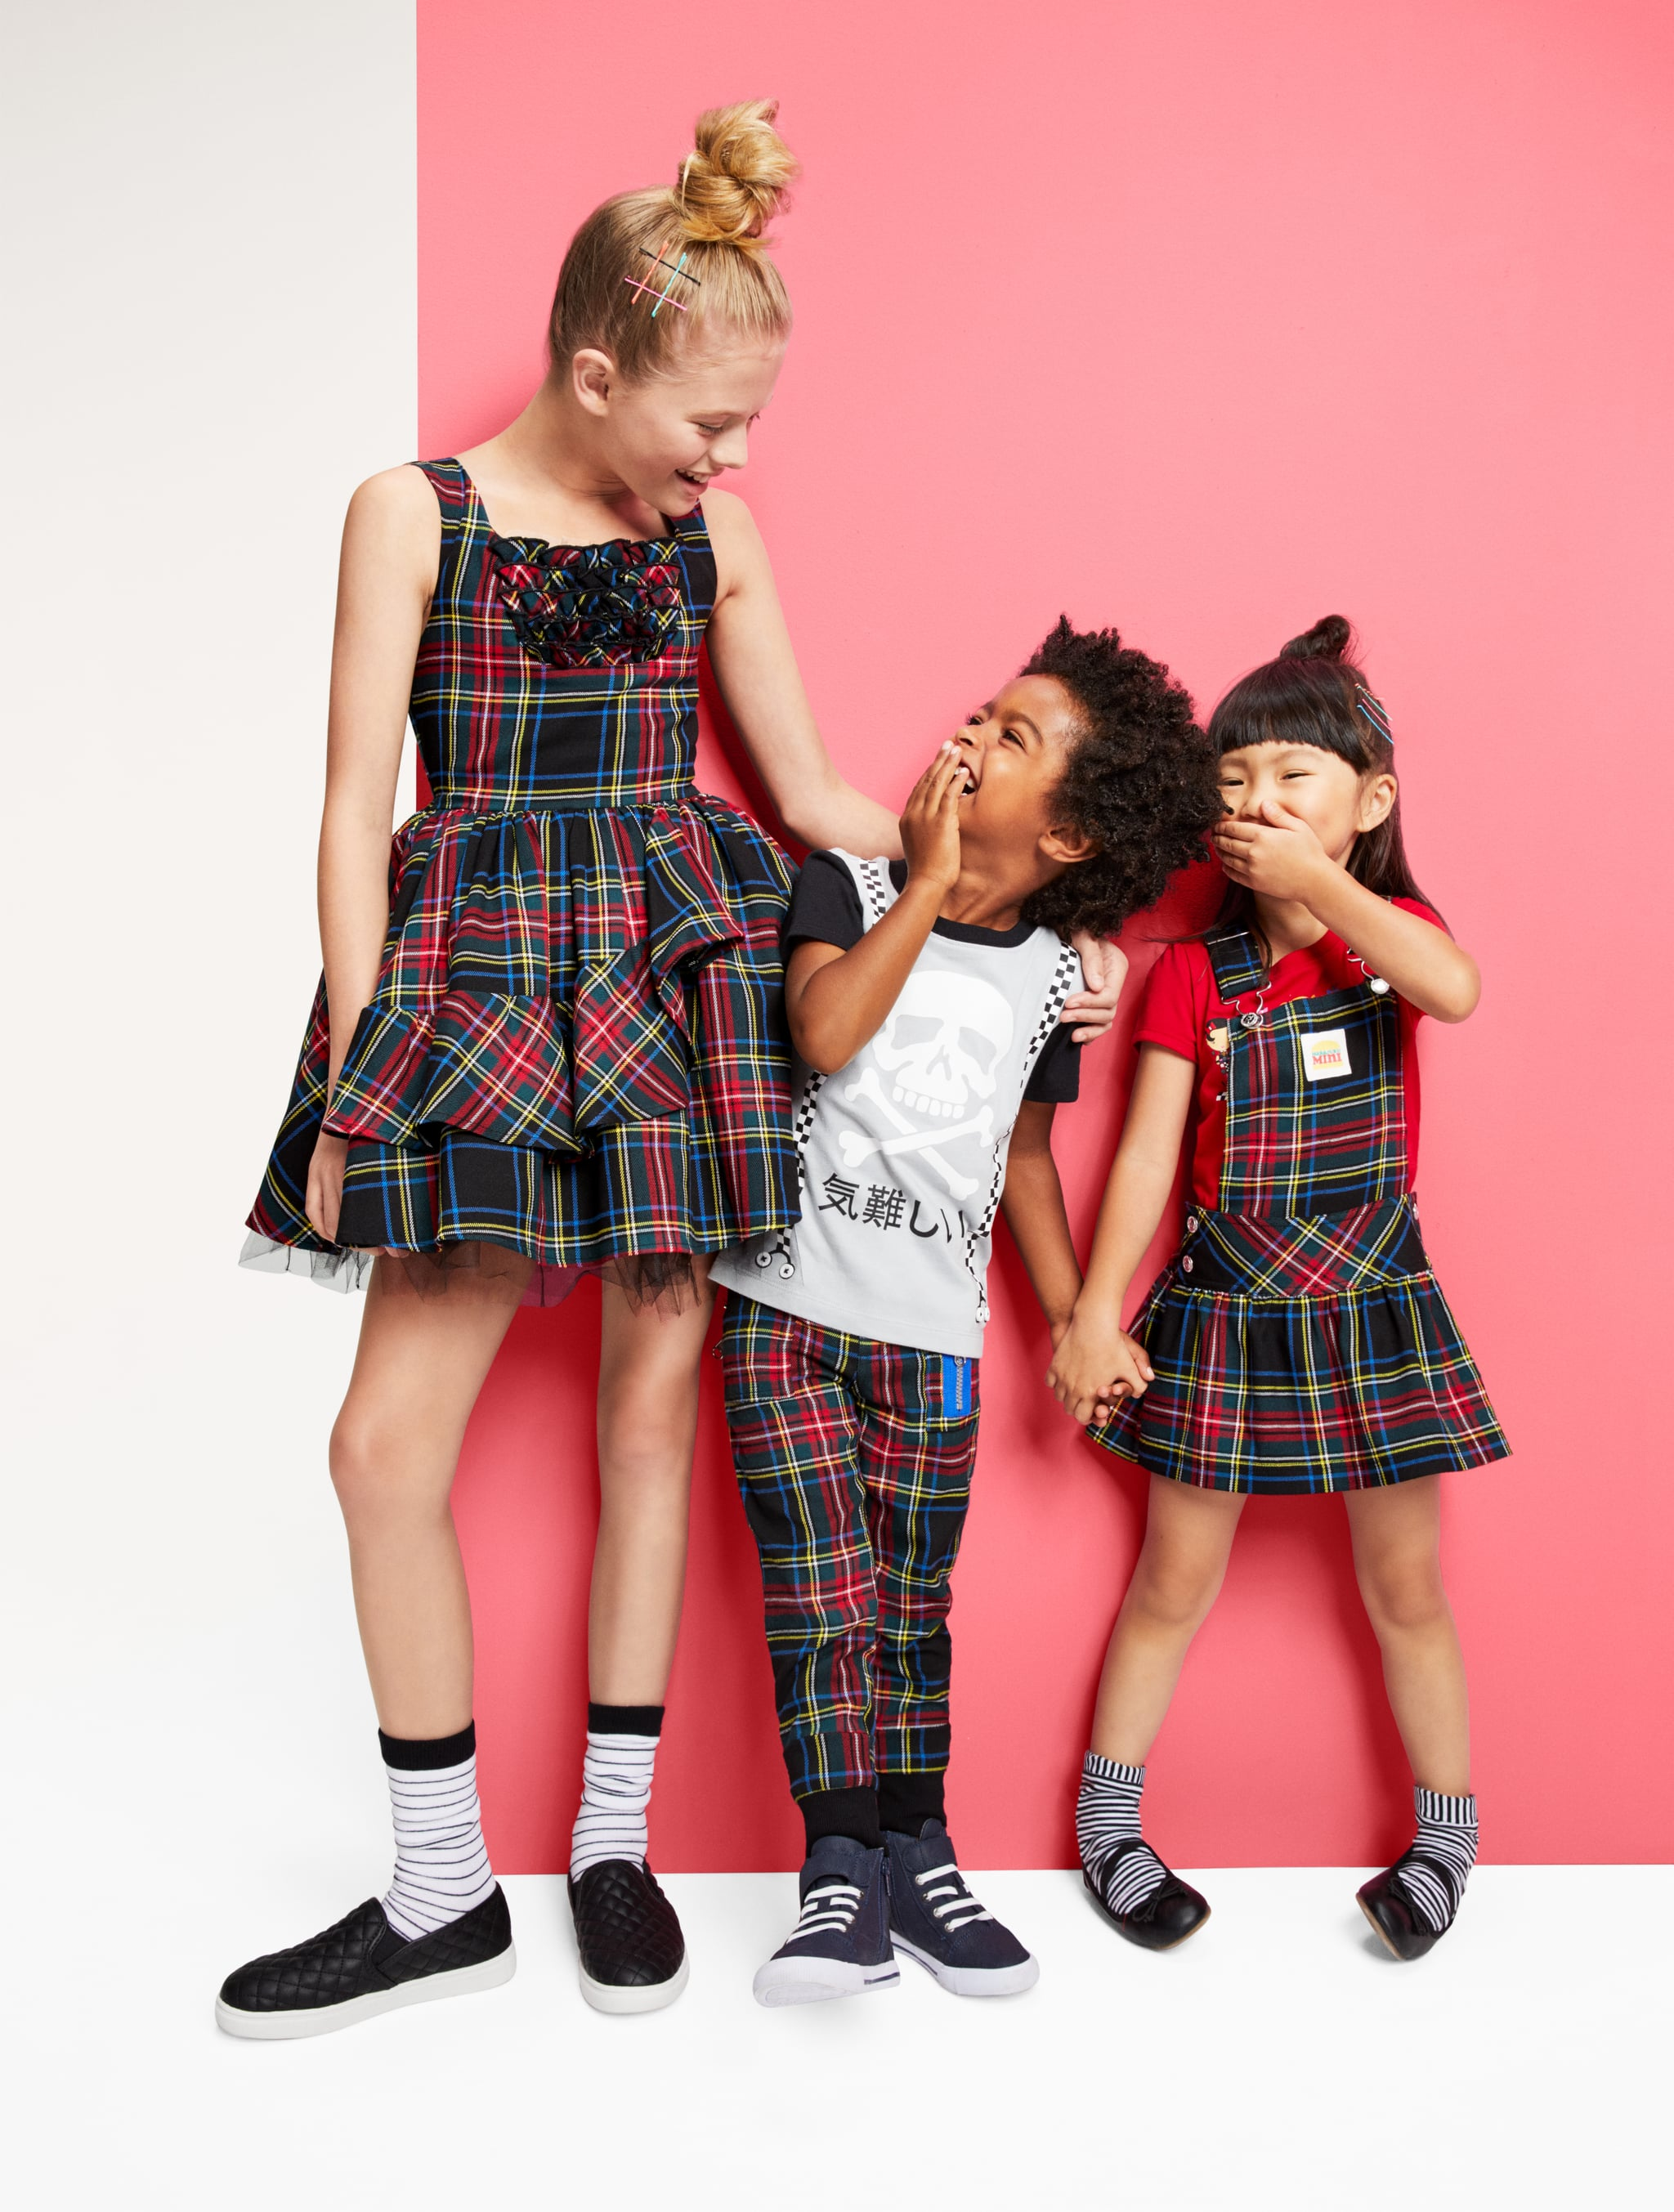 Harajuku Mini For Target Here S Your First Look At Every Nostalgia Inducing Piece In Target S Anniversary Collection Popsugar Fashion Photo 9